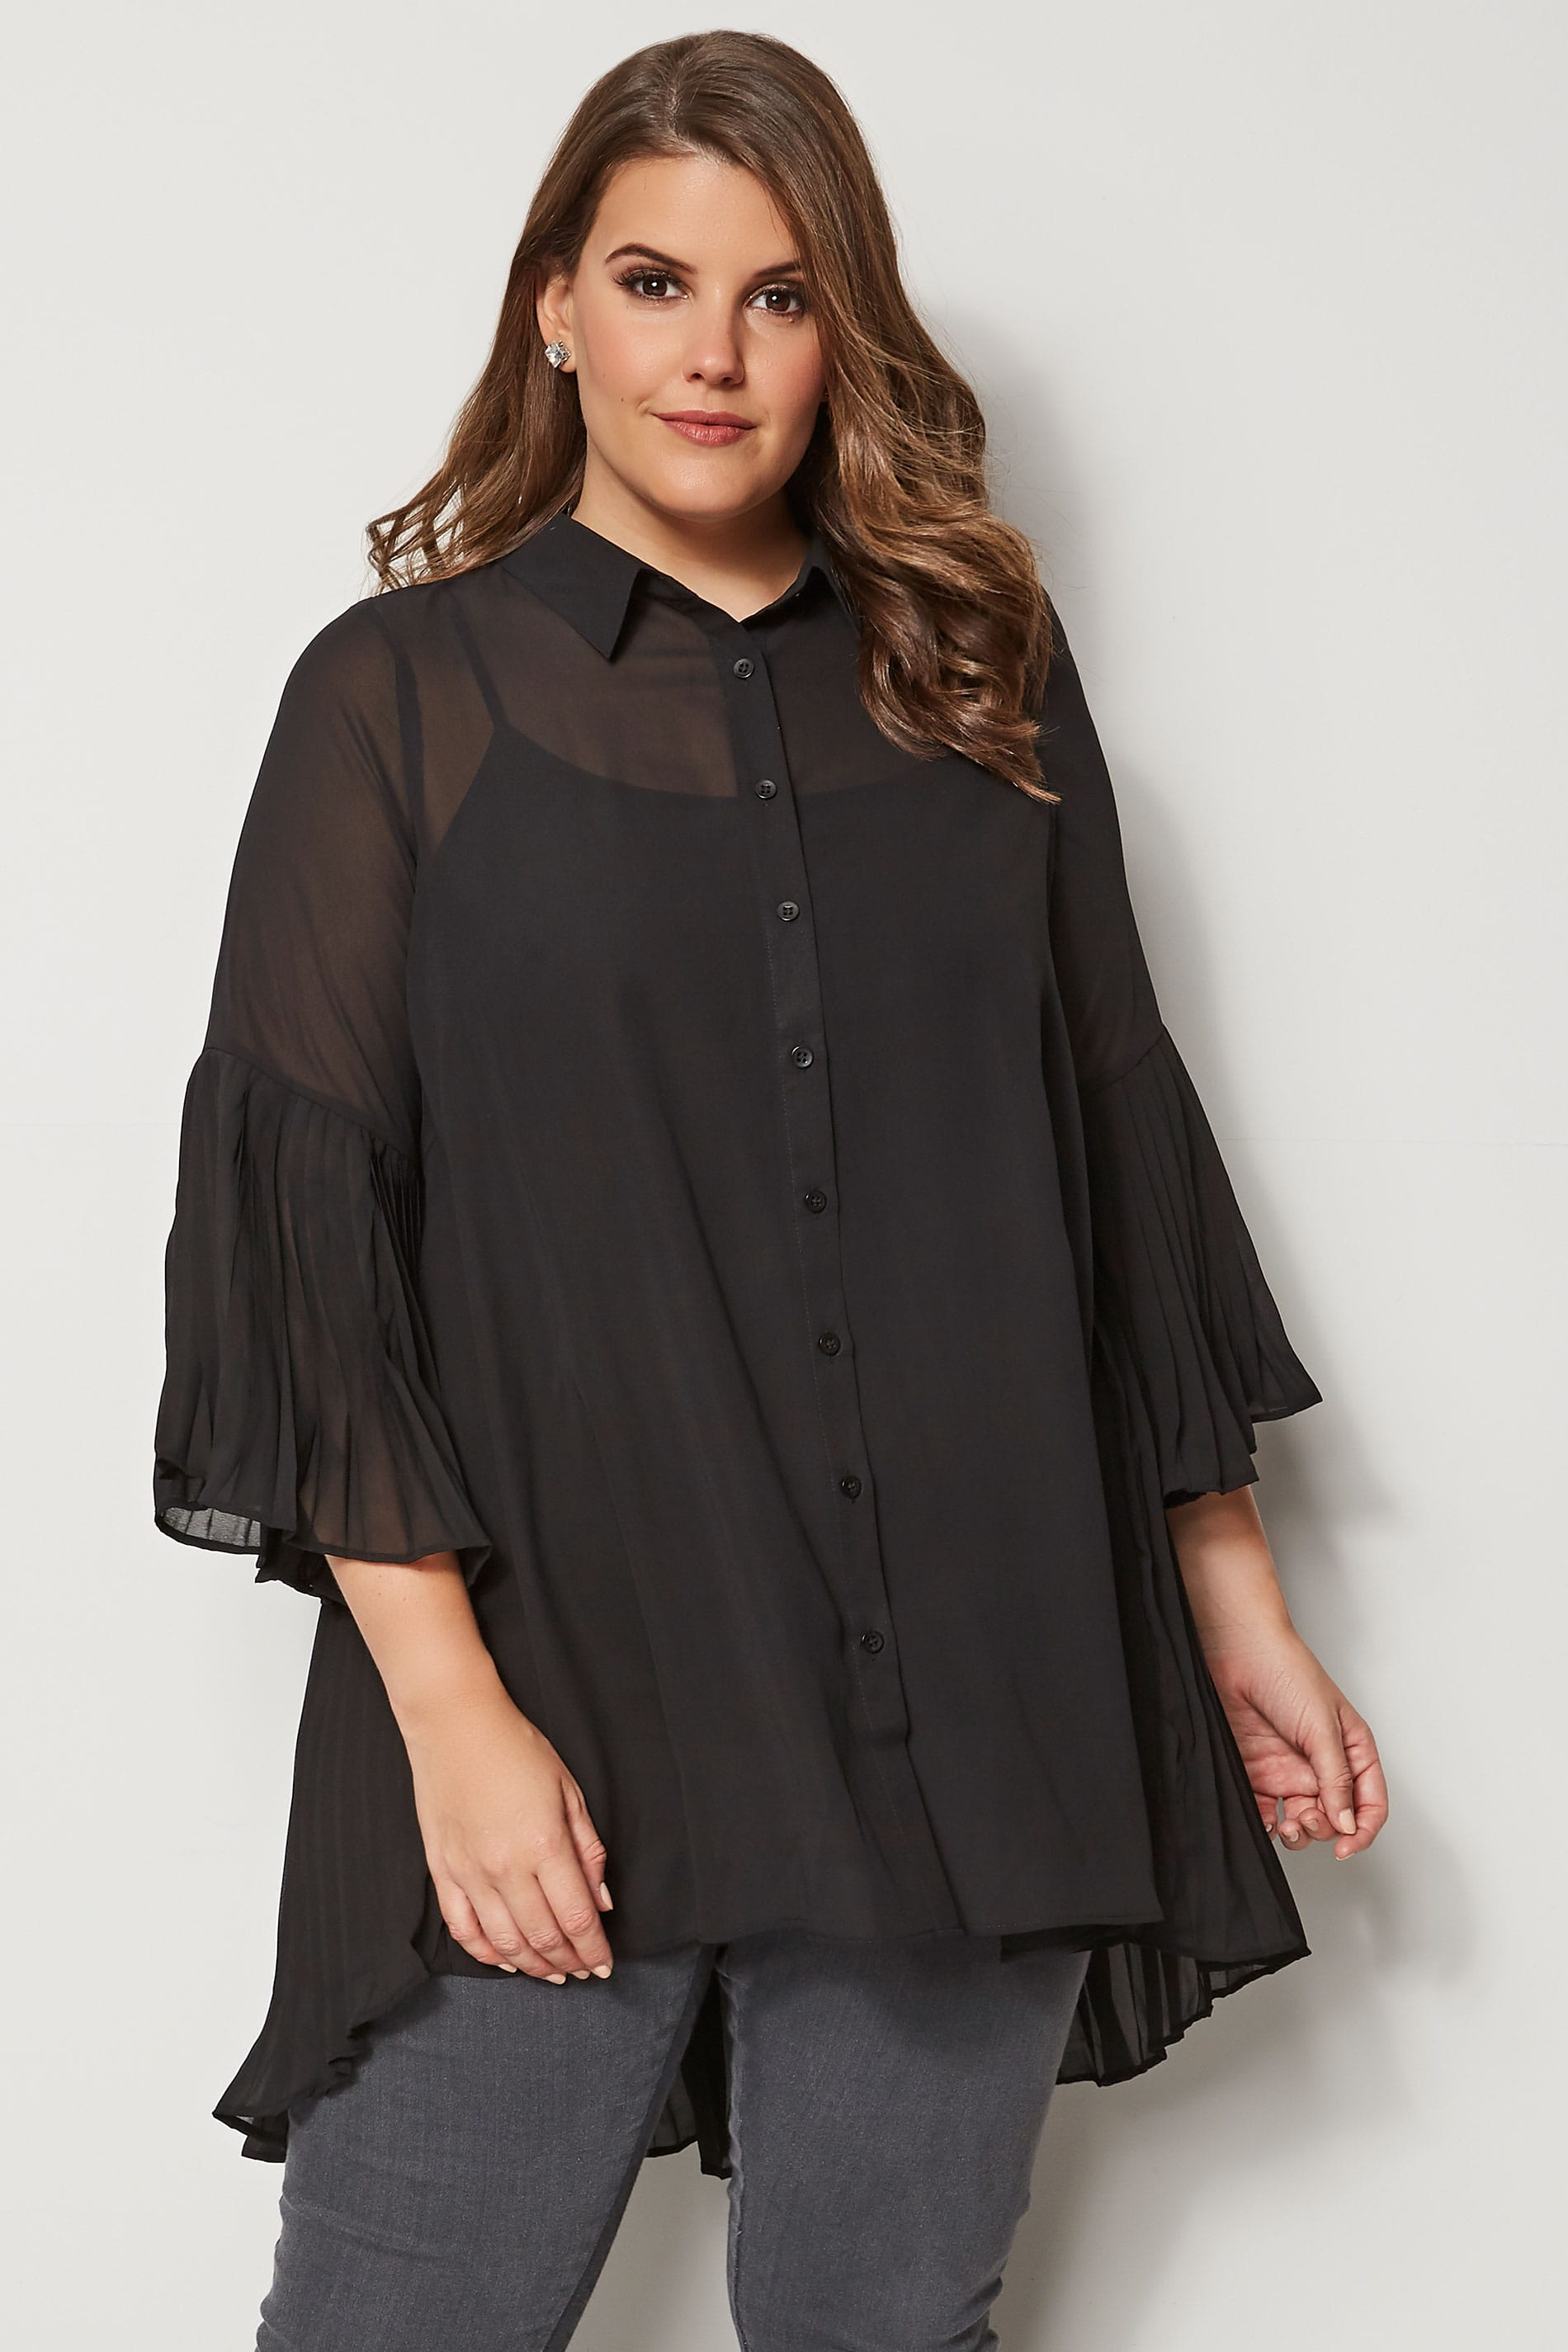 cd7090cb5e81 YOURS LONDON Black Pleated Longline Shirt, plus size 16 to 32